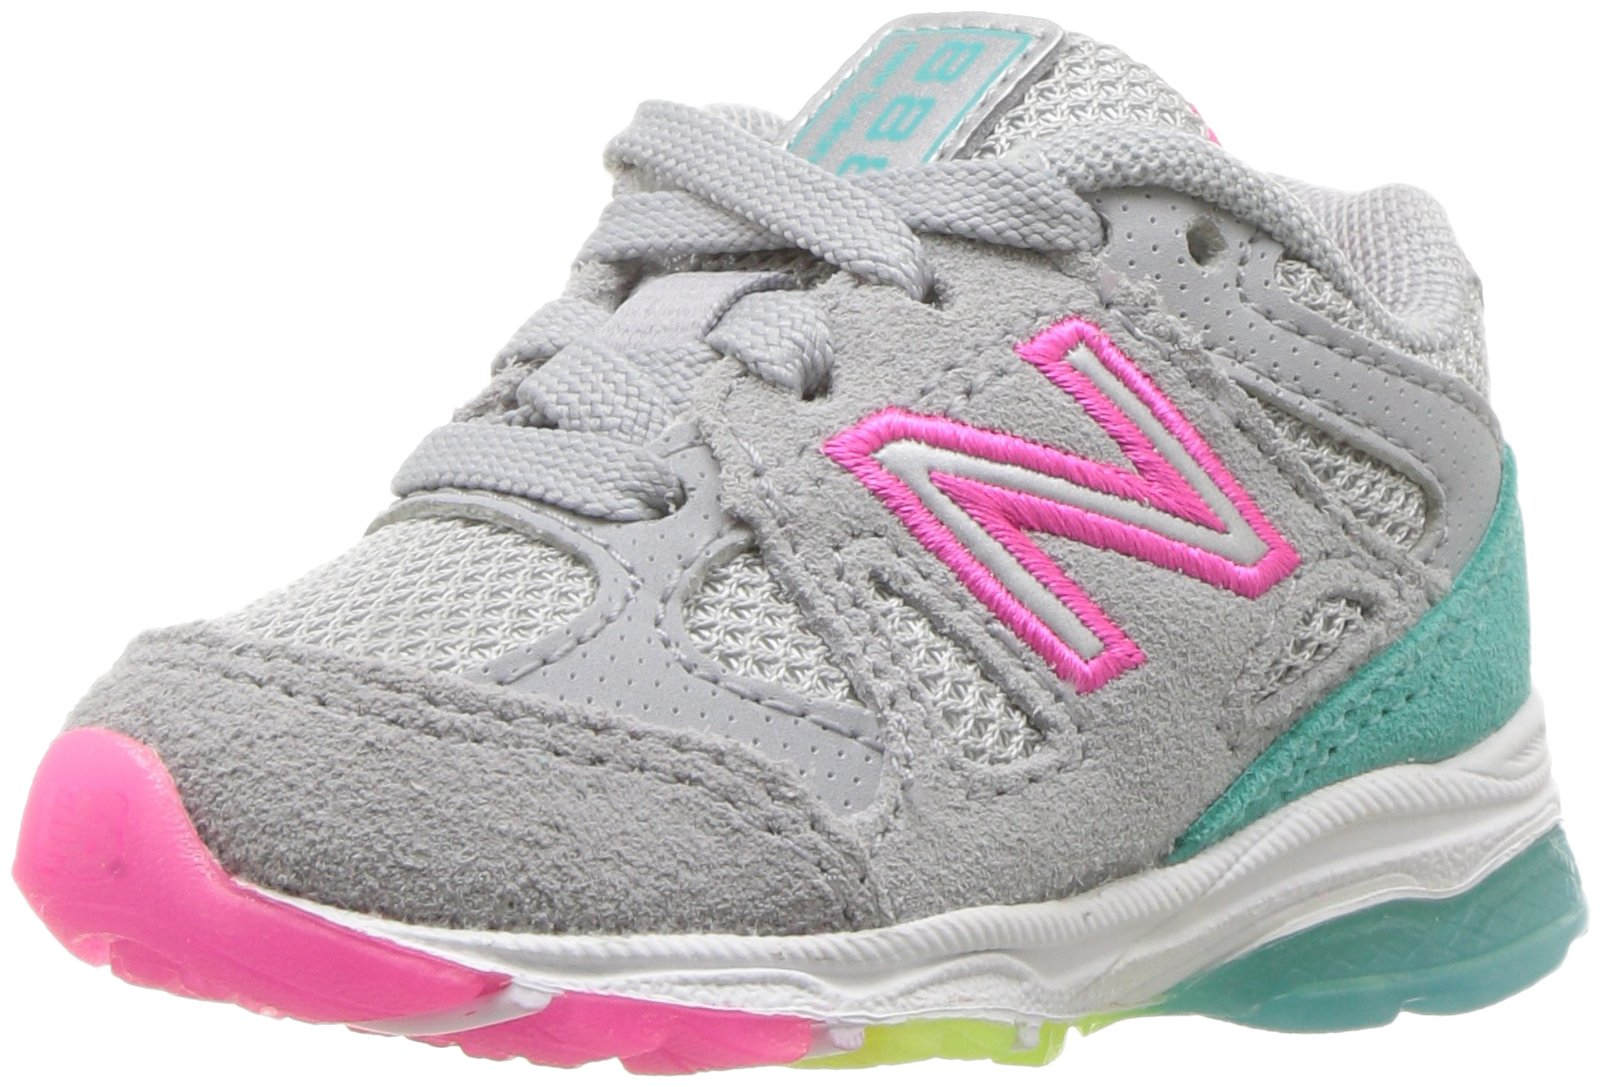 New Balance Girls' 888v1 Running Shoe, Silver Mink/Rainbow, 6 W US Big Kid by New Balance (Image #1)